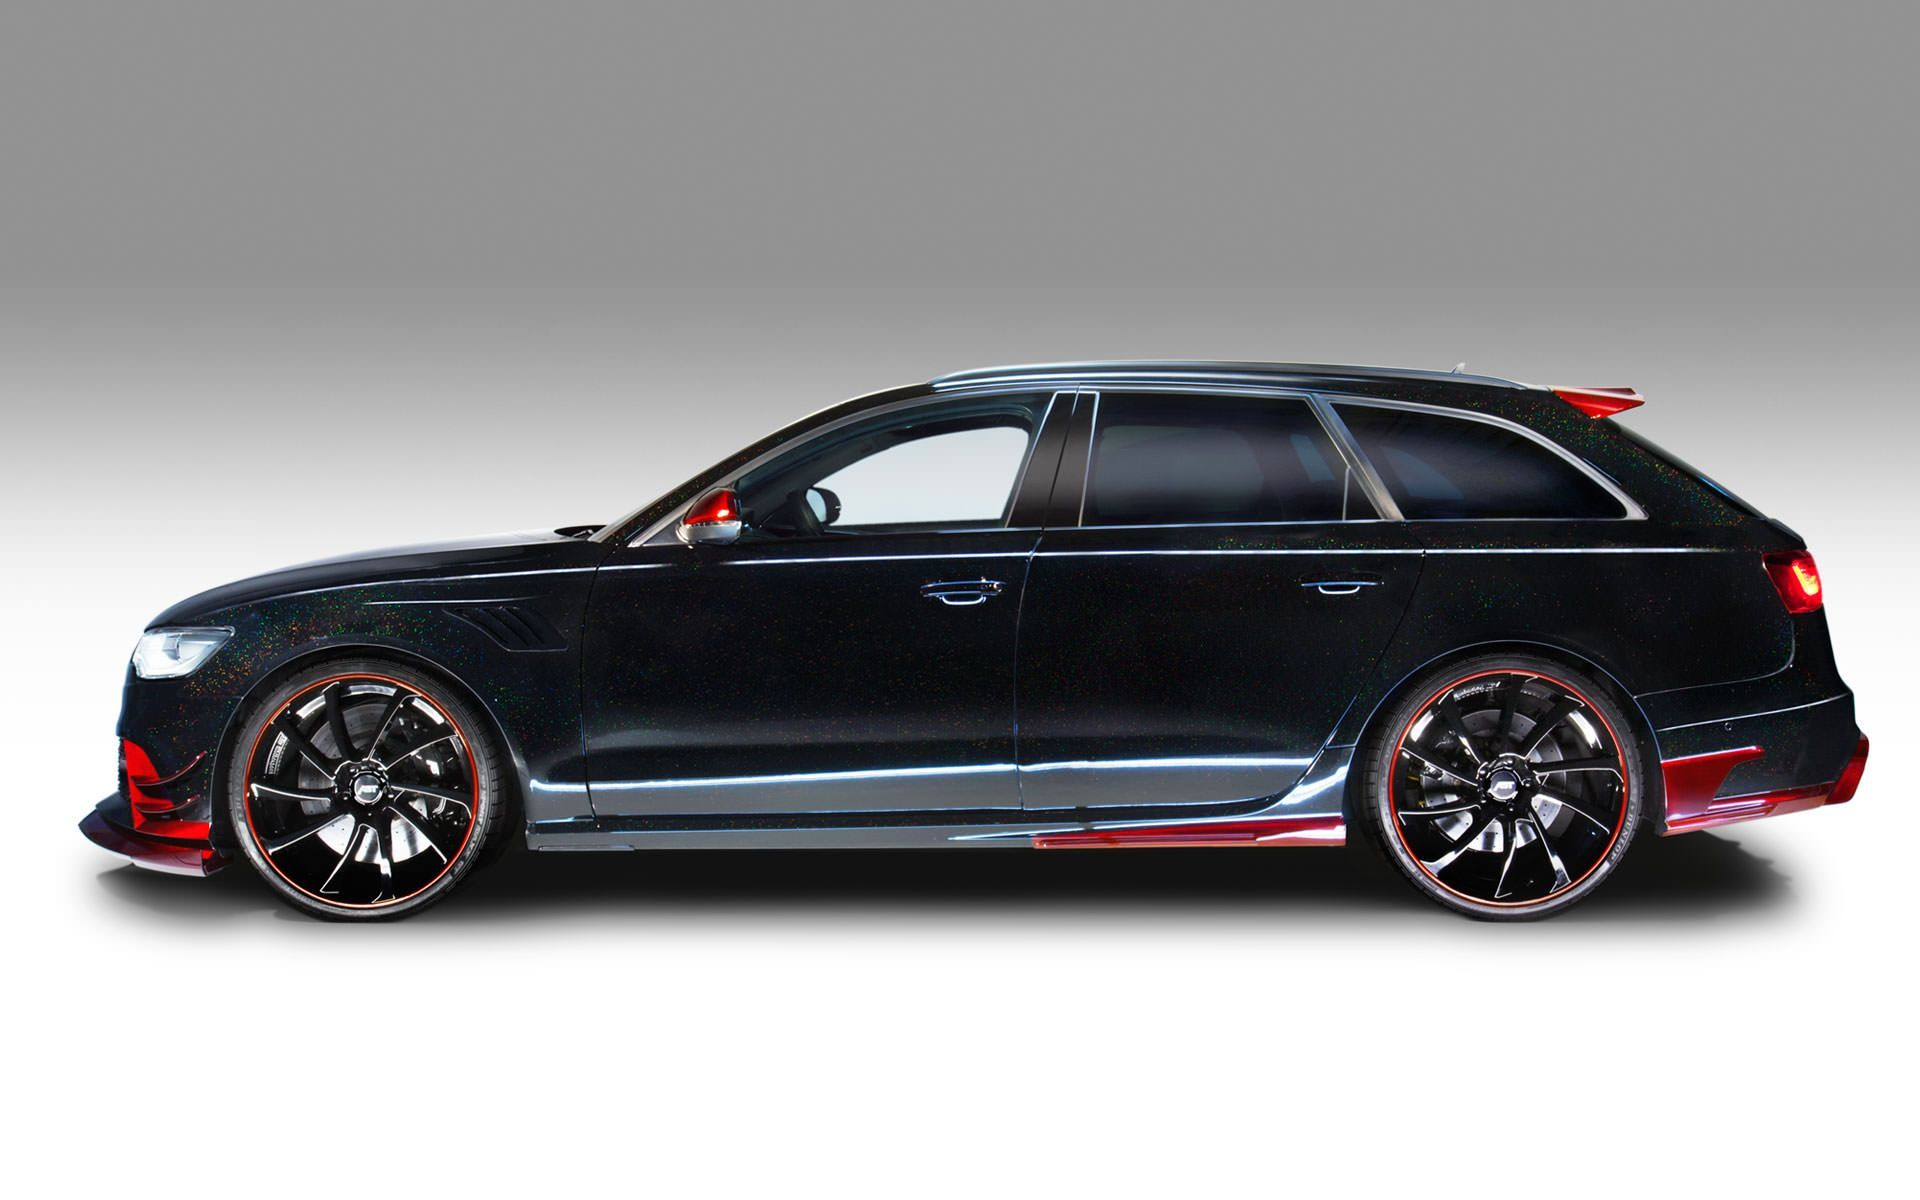 ABT Audi RS6-R Limited Edition    ABT Audi RS6-R Limited Edition